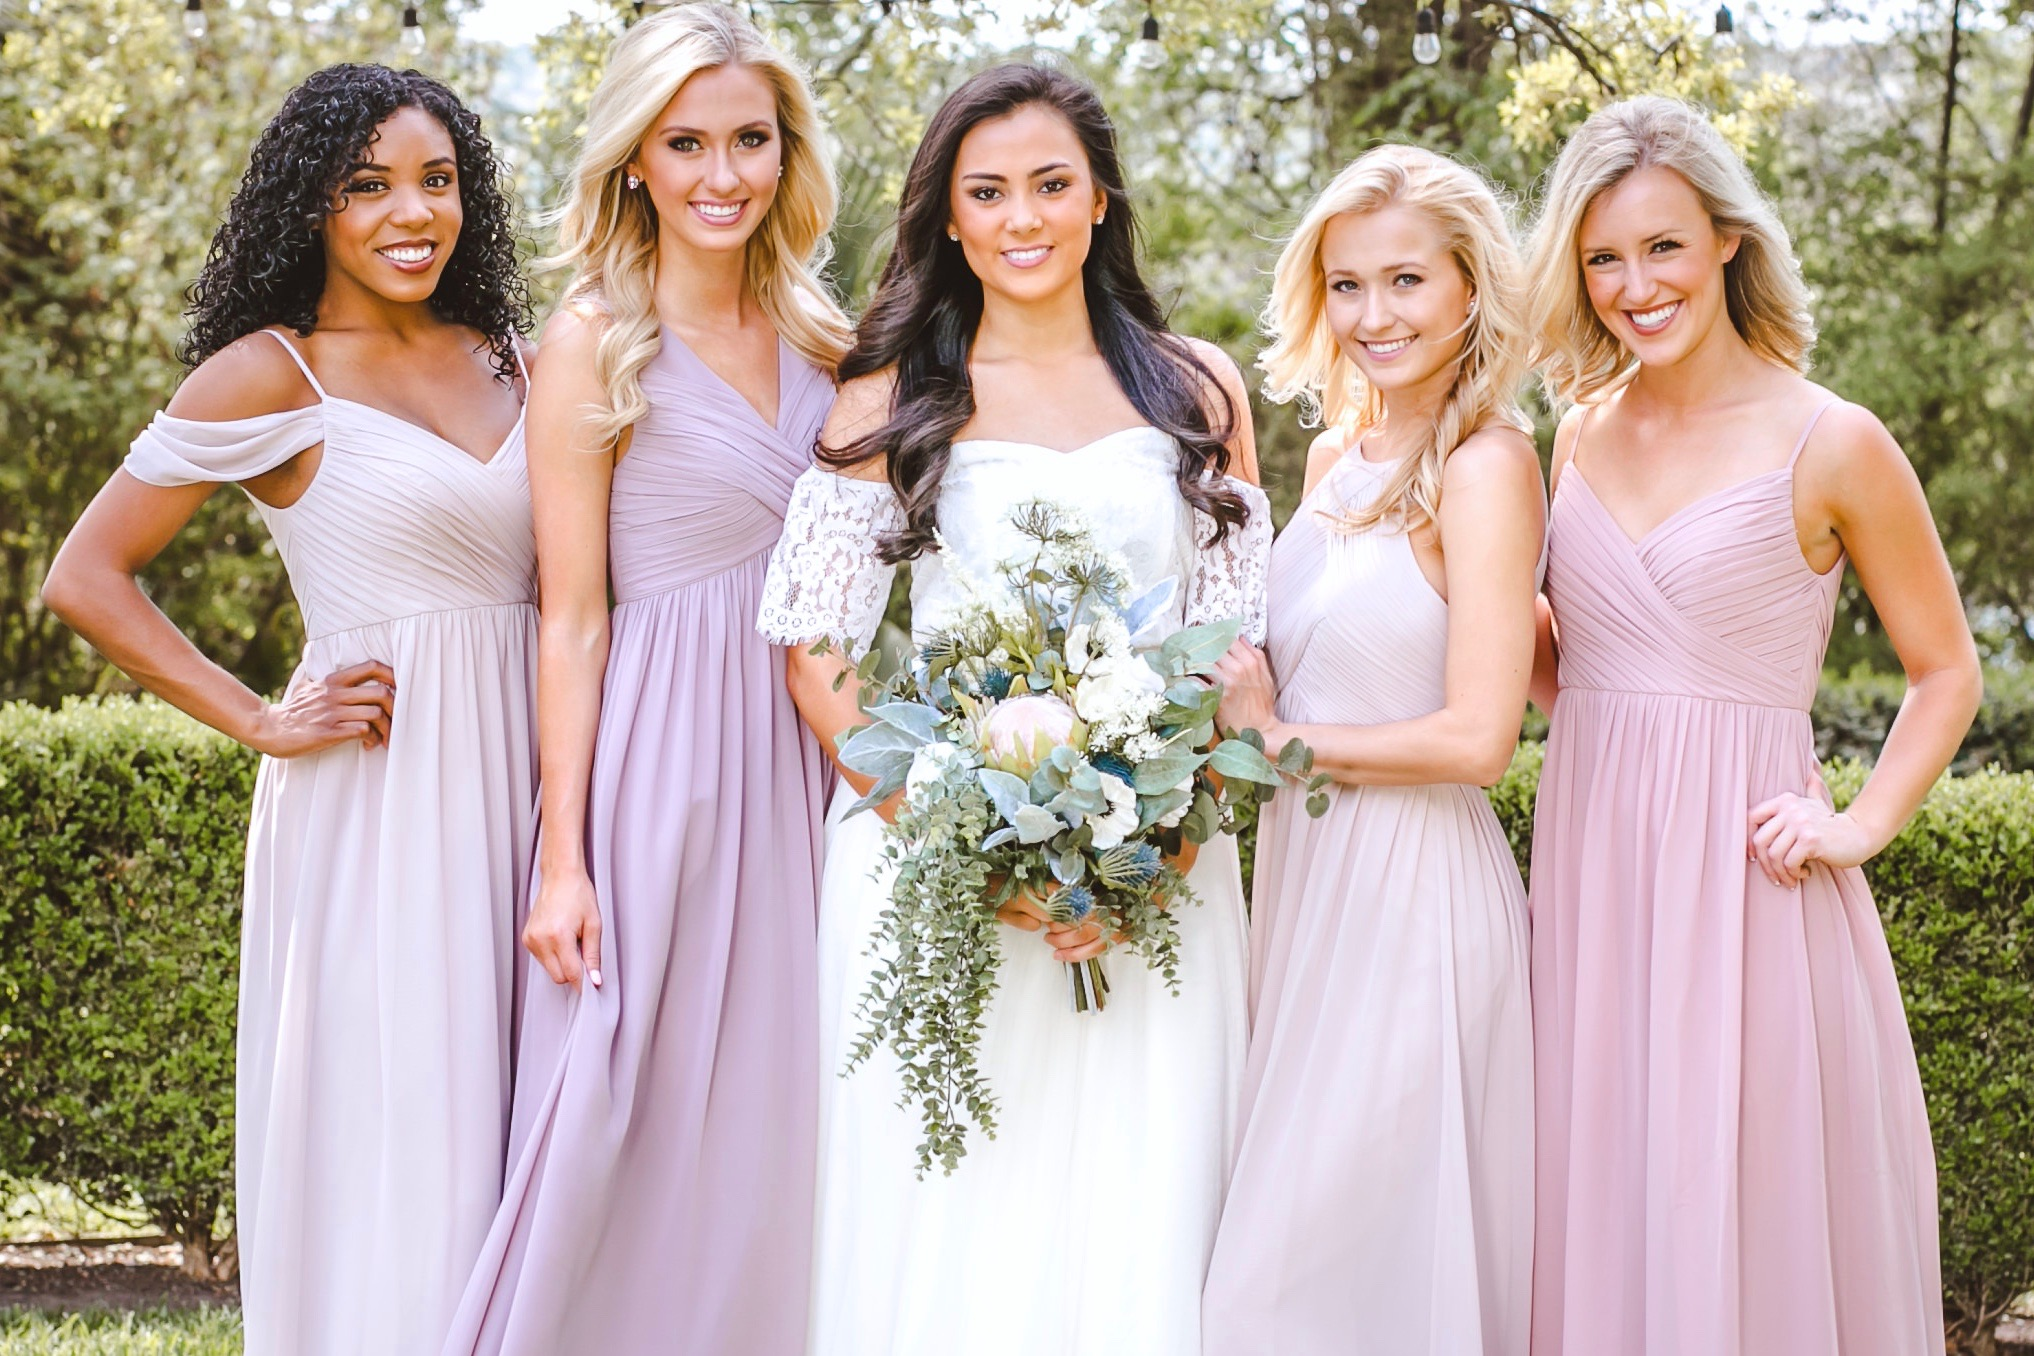 updated classics, and new spins on classic styles of Revelry bridesmaid dresses in mauve, blush, and neutral Chiffon.